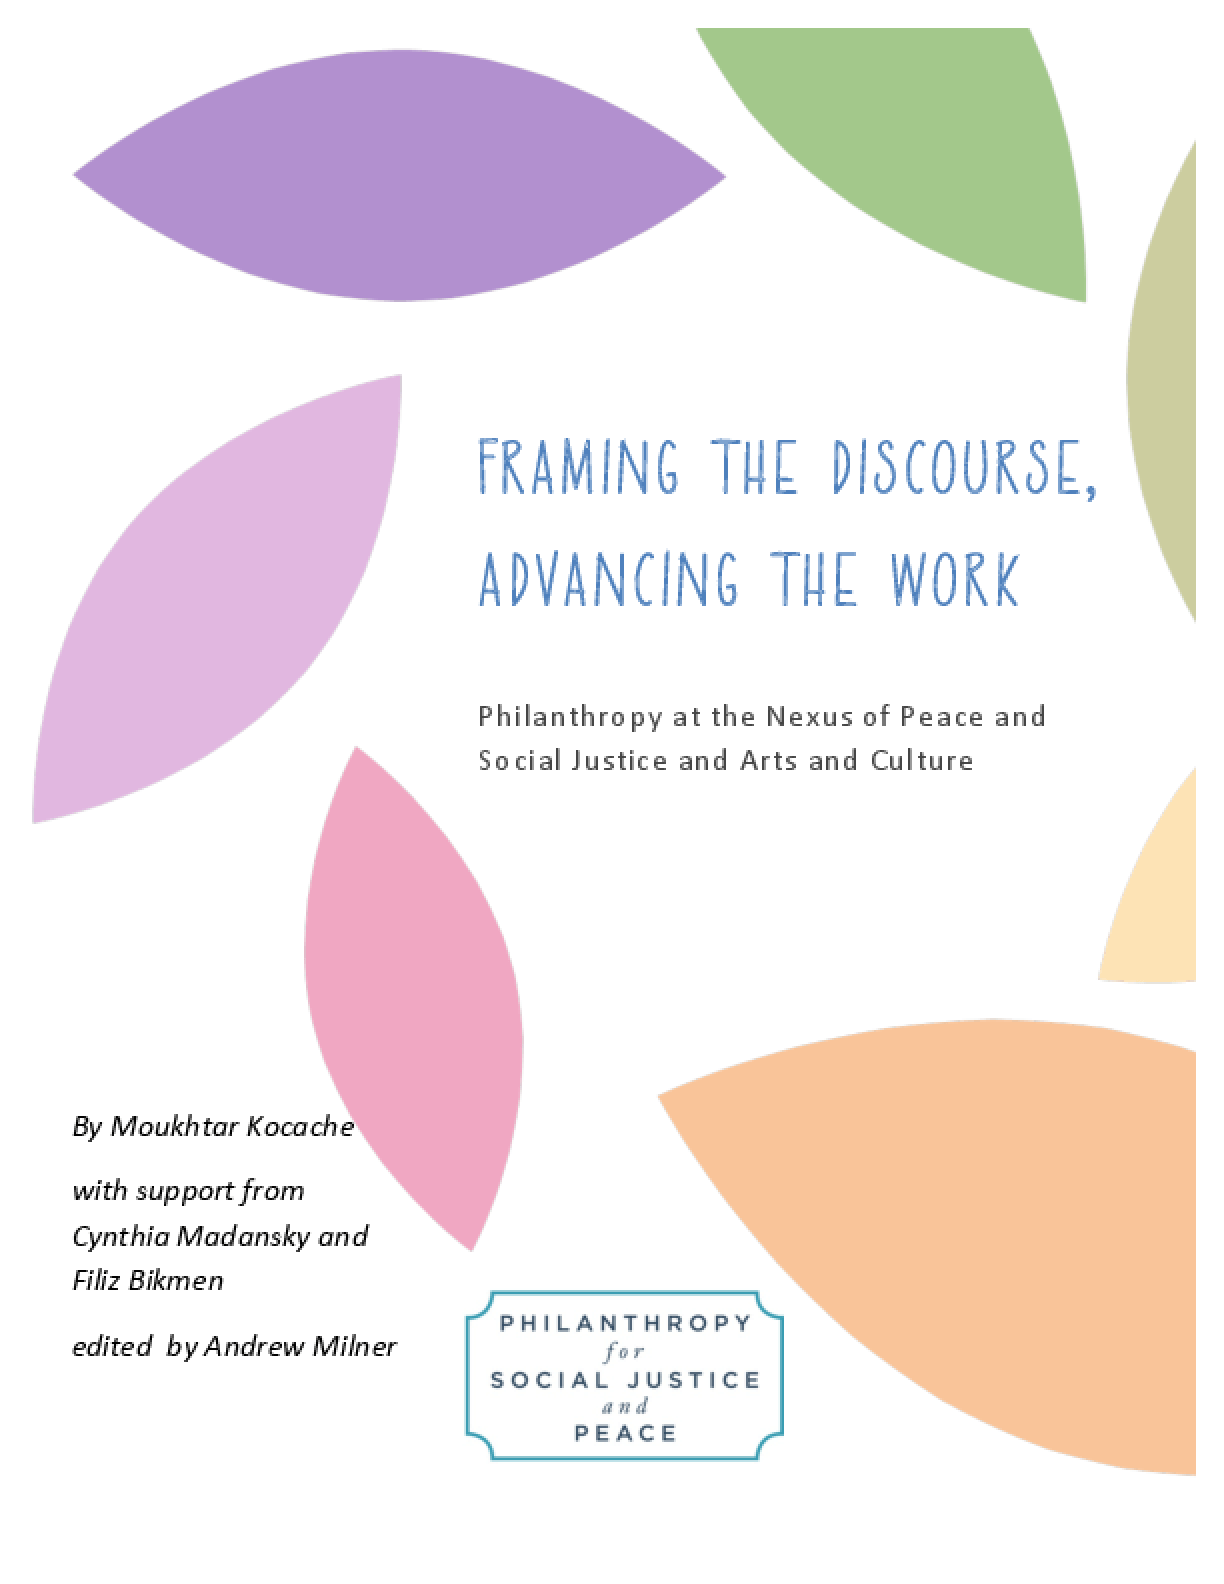 Framing the Discourse, Advancing the Work: Philanthropy at the Nexus of Peace and Social Justice and Arts andCulture